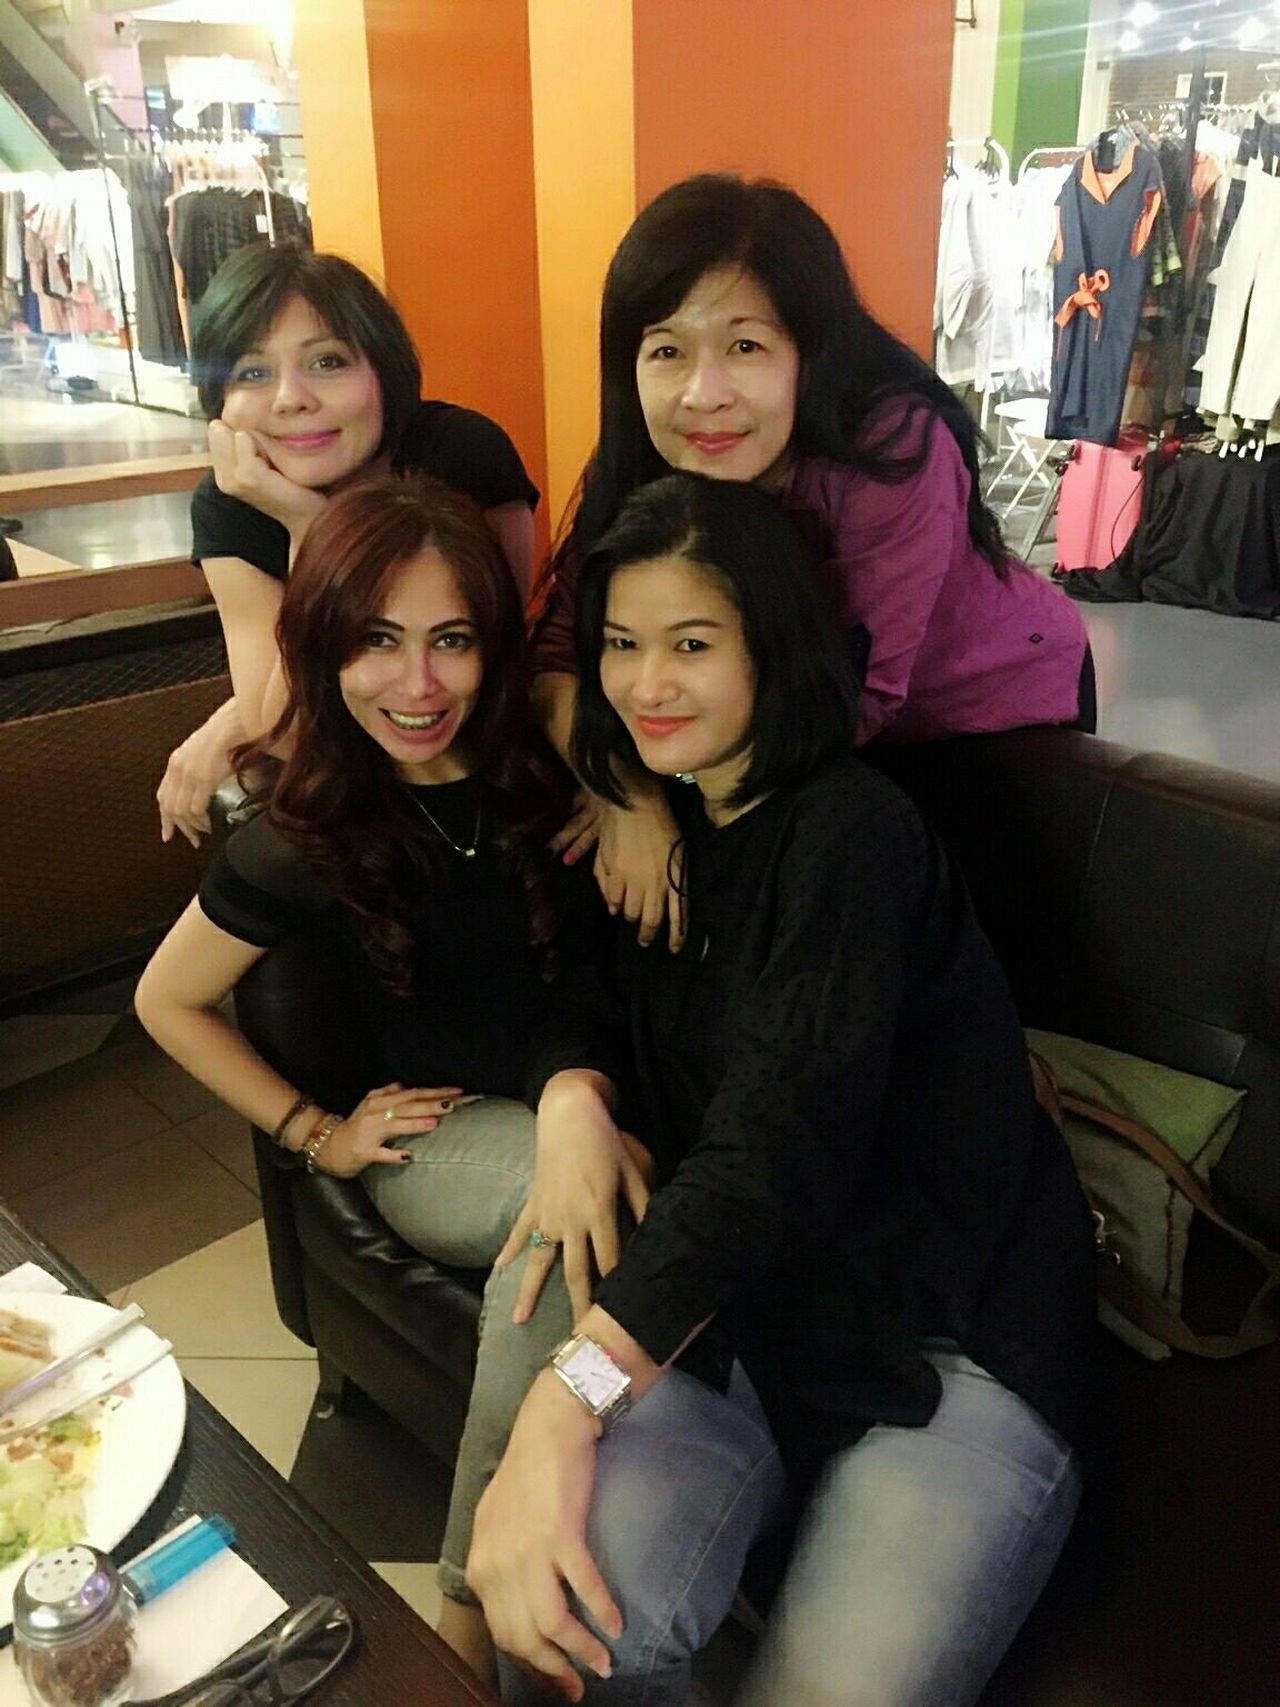 Enjoy The New Normal Sitting Portrait Looking At Camera Togetherness Friendship Indoors  Archival Leisure Activity People Selfie Fun Cafe Socializing Social Gathering Oldfriends Meeting Friends Meetup EyeEm Eyeemphoto Having A Good Time Girls Girls Night Out Beautifulgirls Mature Women